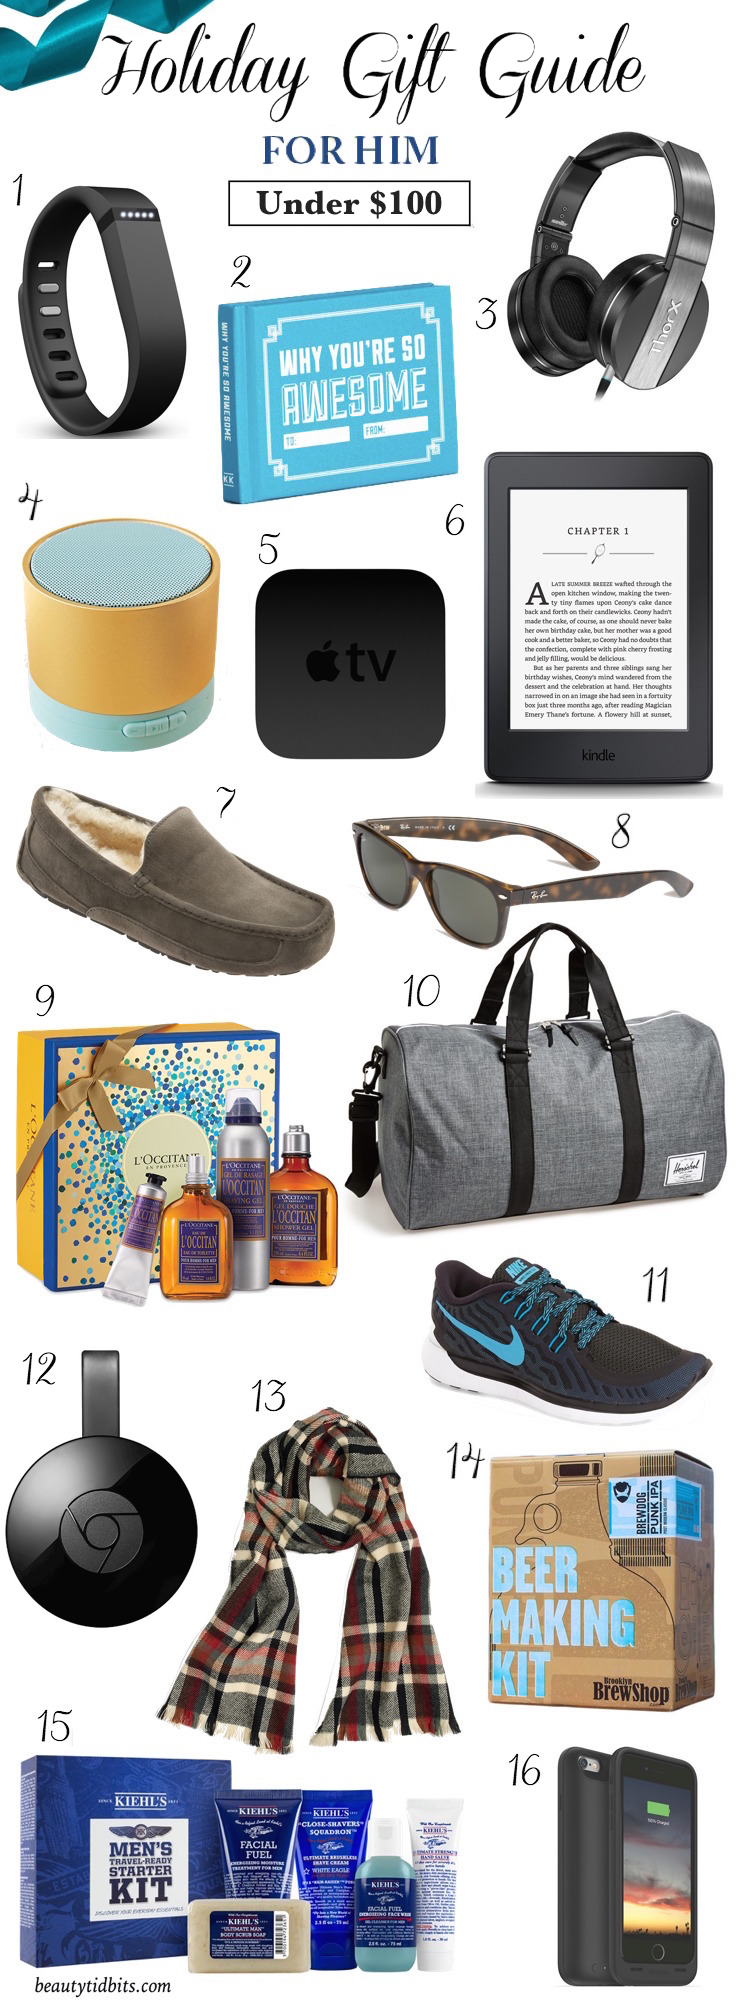 Racking your brain for what to give the special guys on your holiday list? Check out 16 stocking stuffers and holiday gift ideas for men under $  100 that are sure to be major winners!